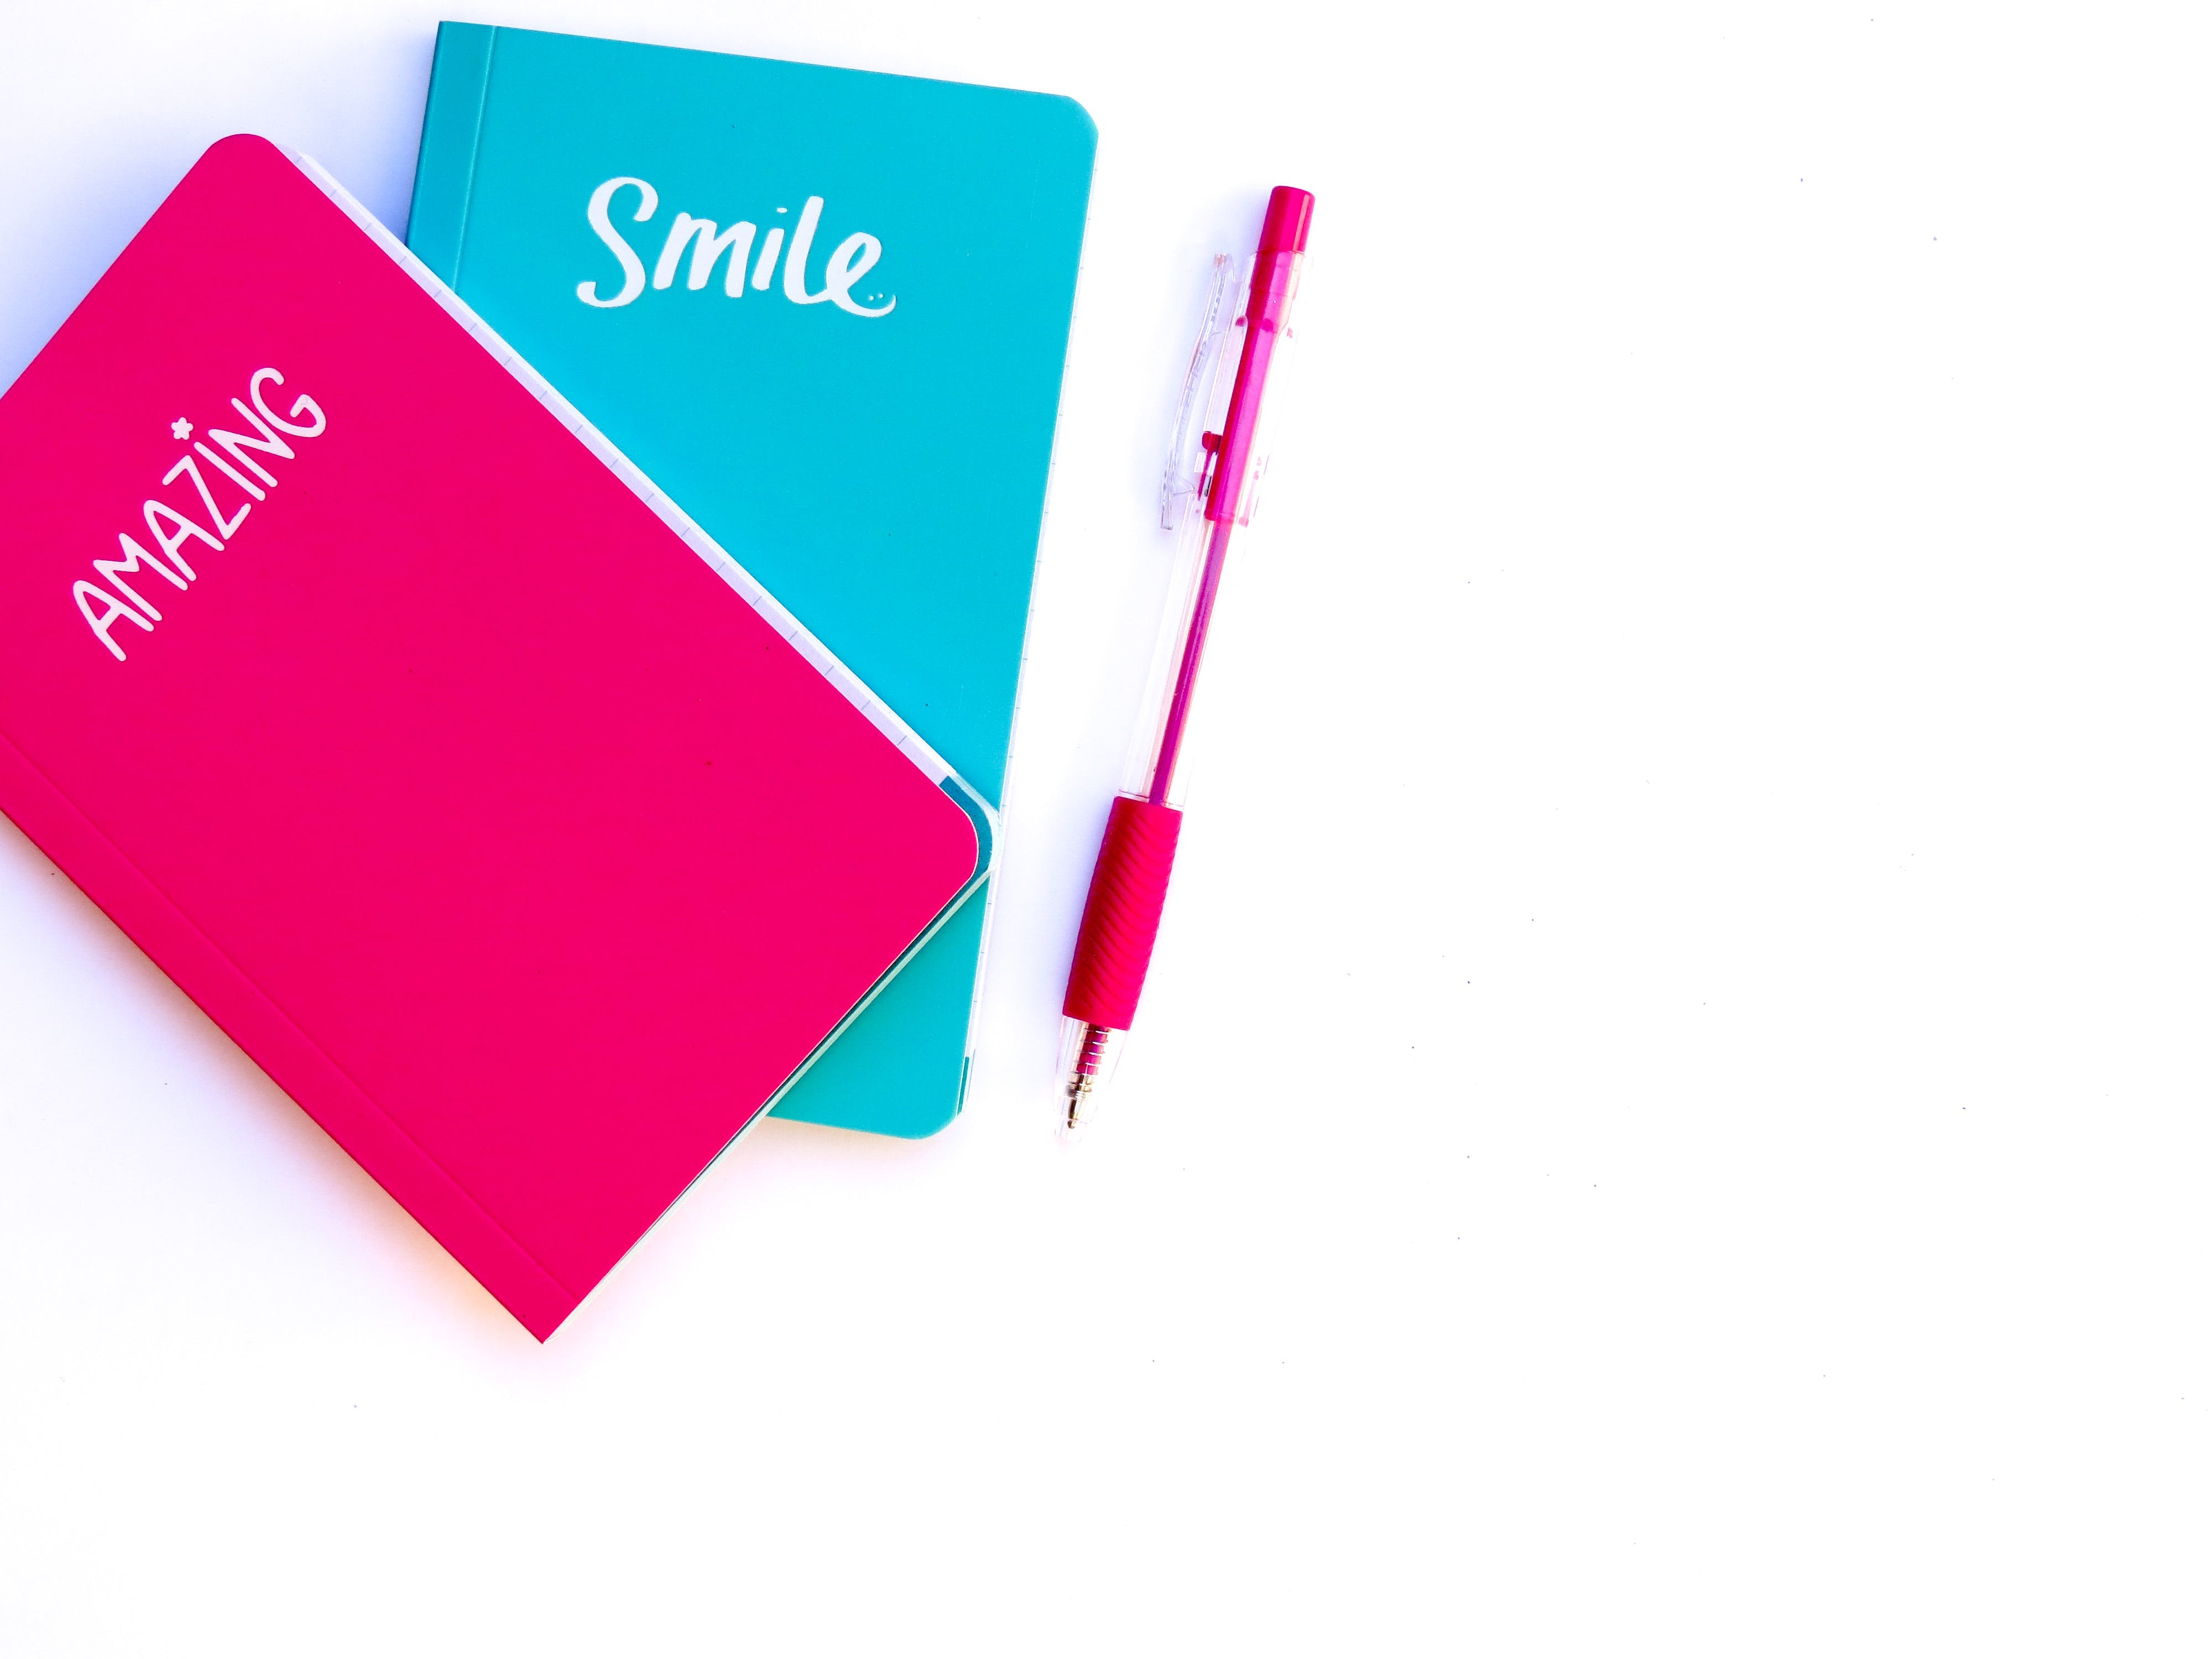 Pink and Blue Notebooks Beside Red Click Pen